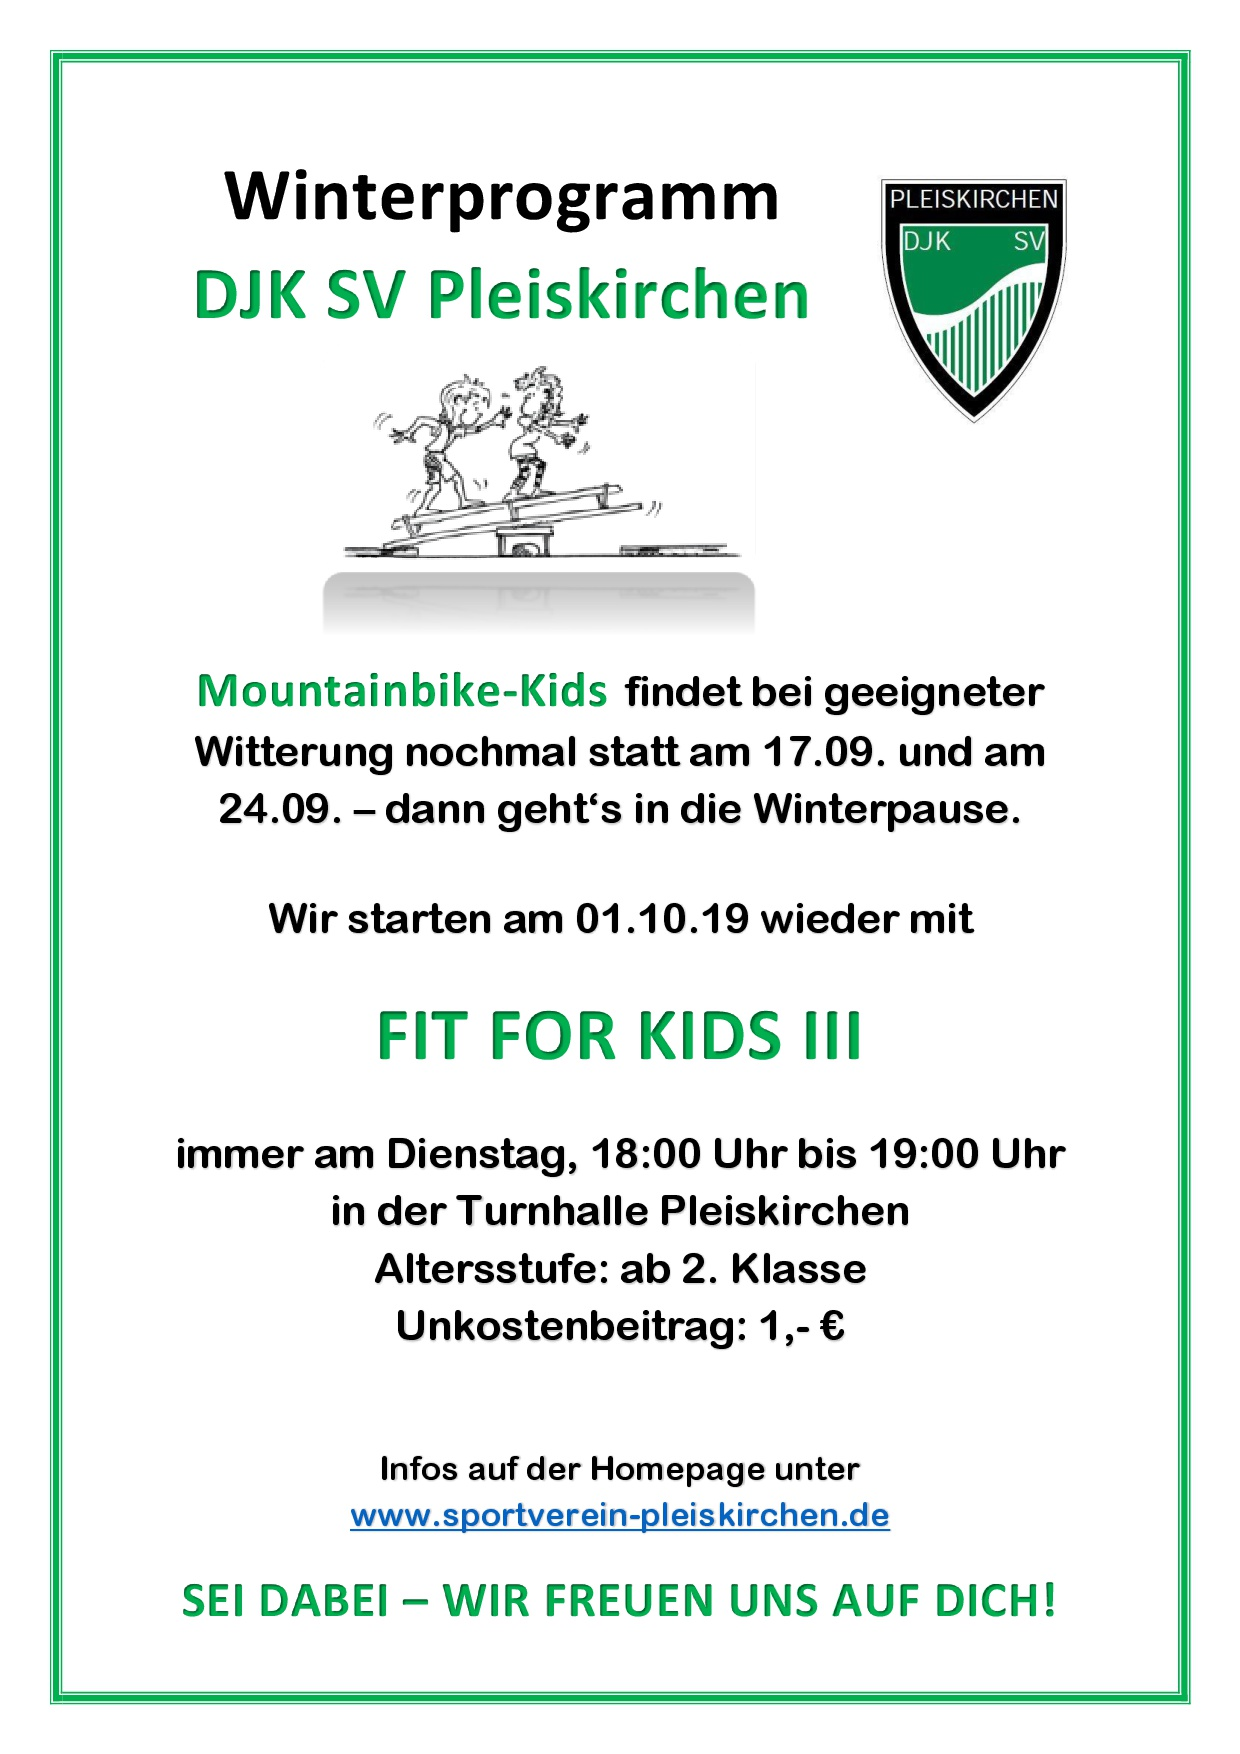 FIT FOR KIDS III startet ab Dienstag, 01.10.